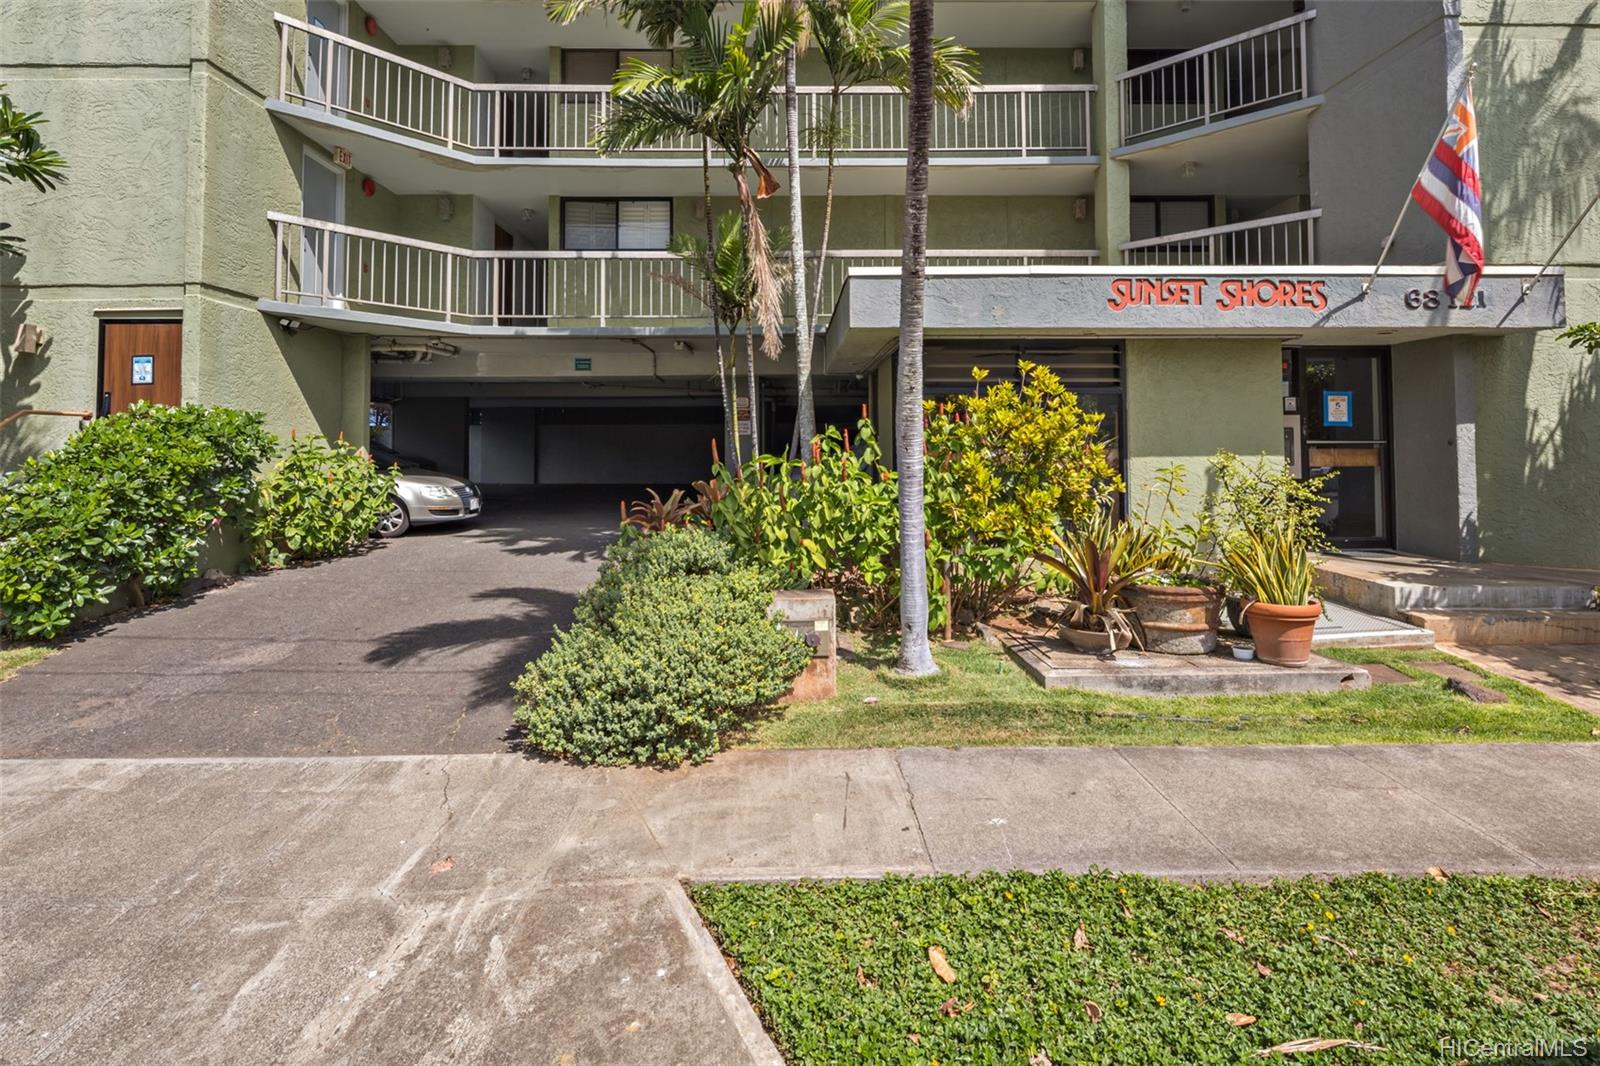 Sunset Shores 68-121 Au Street  Unit 502